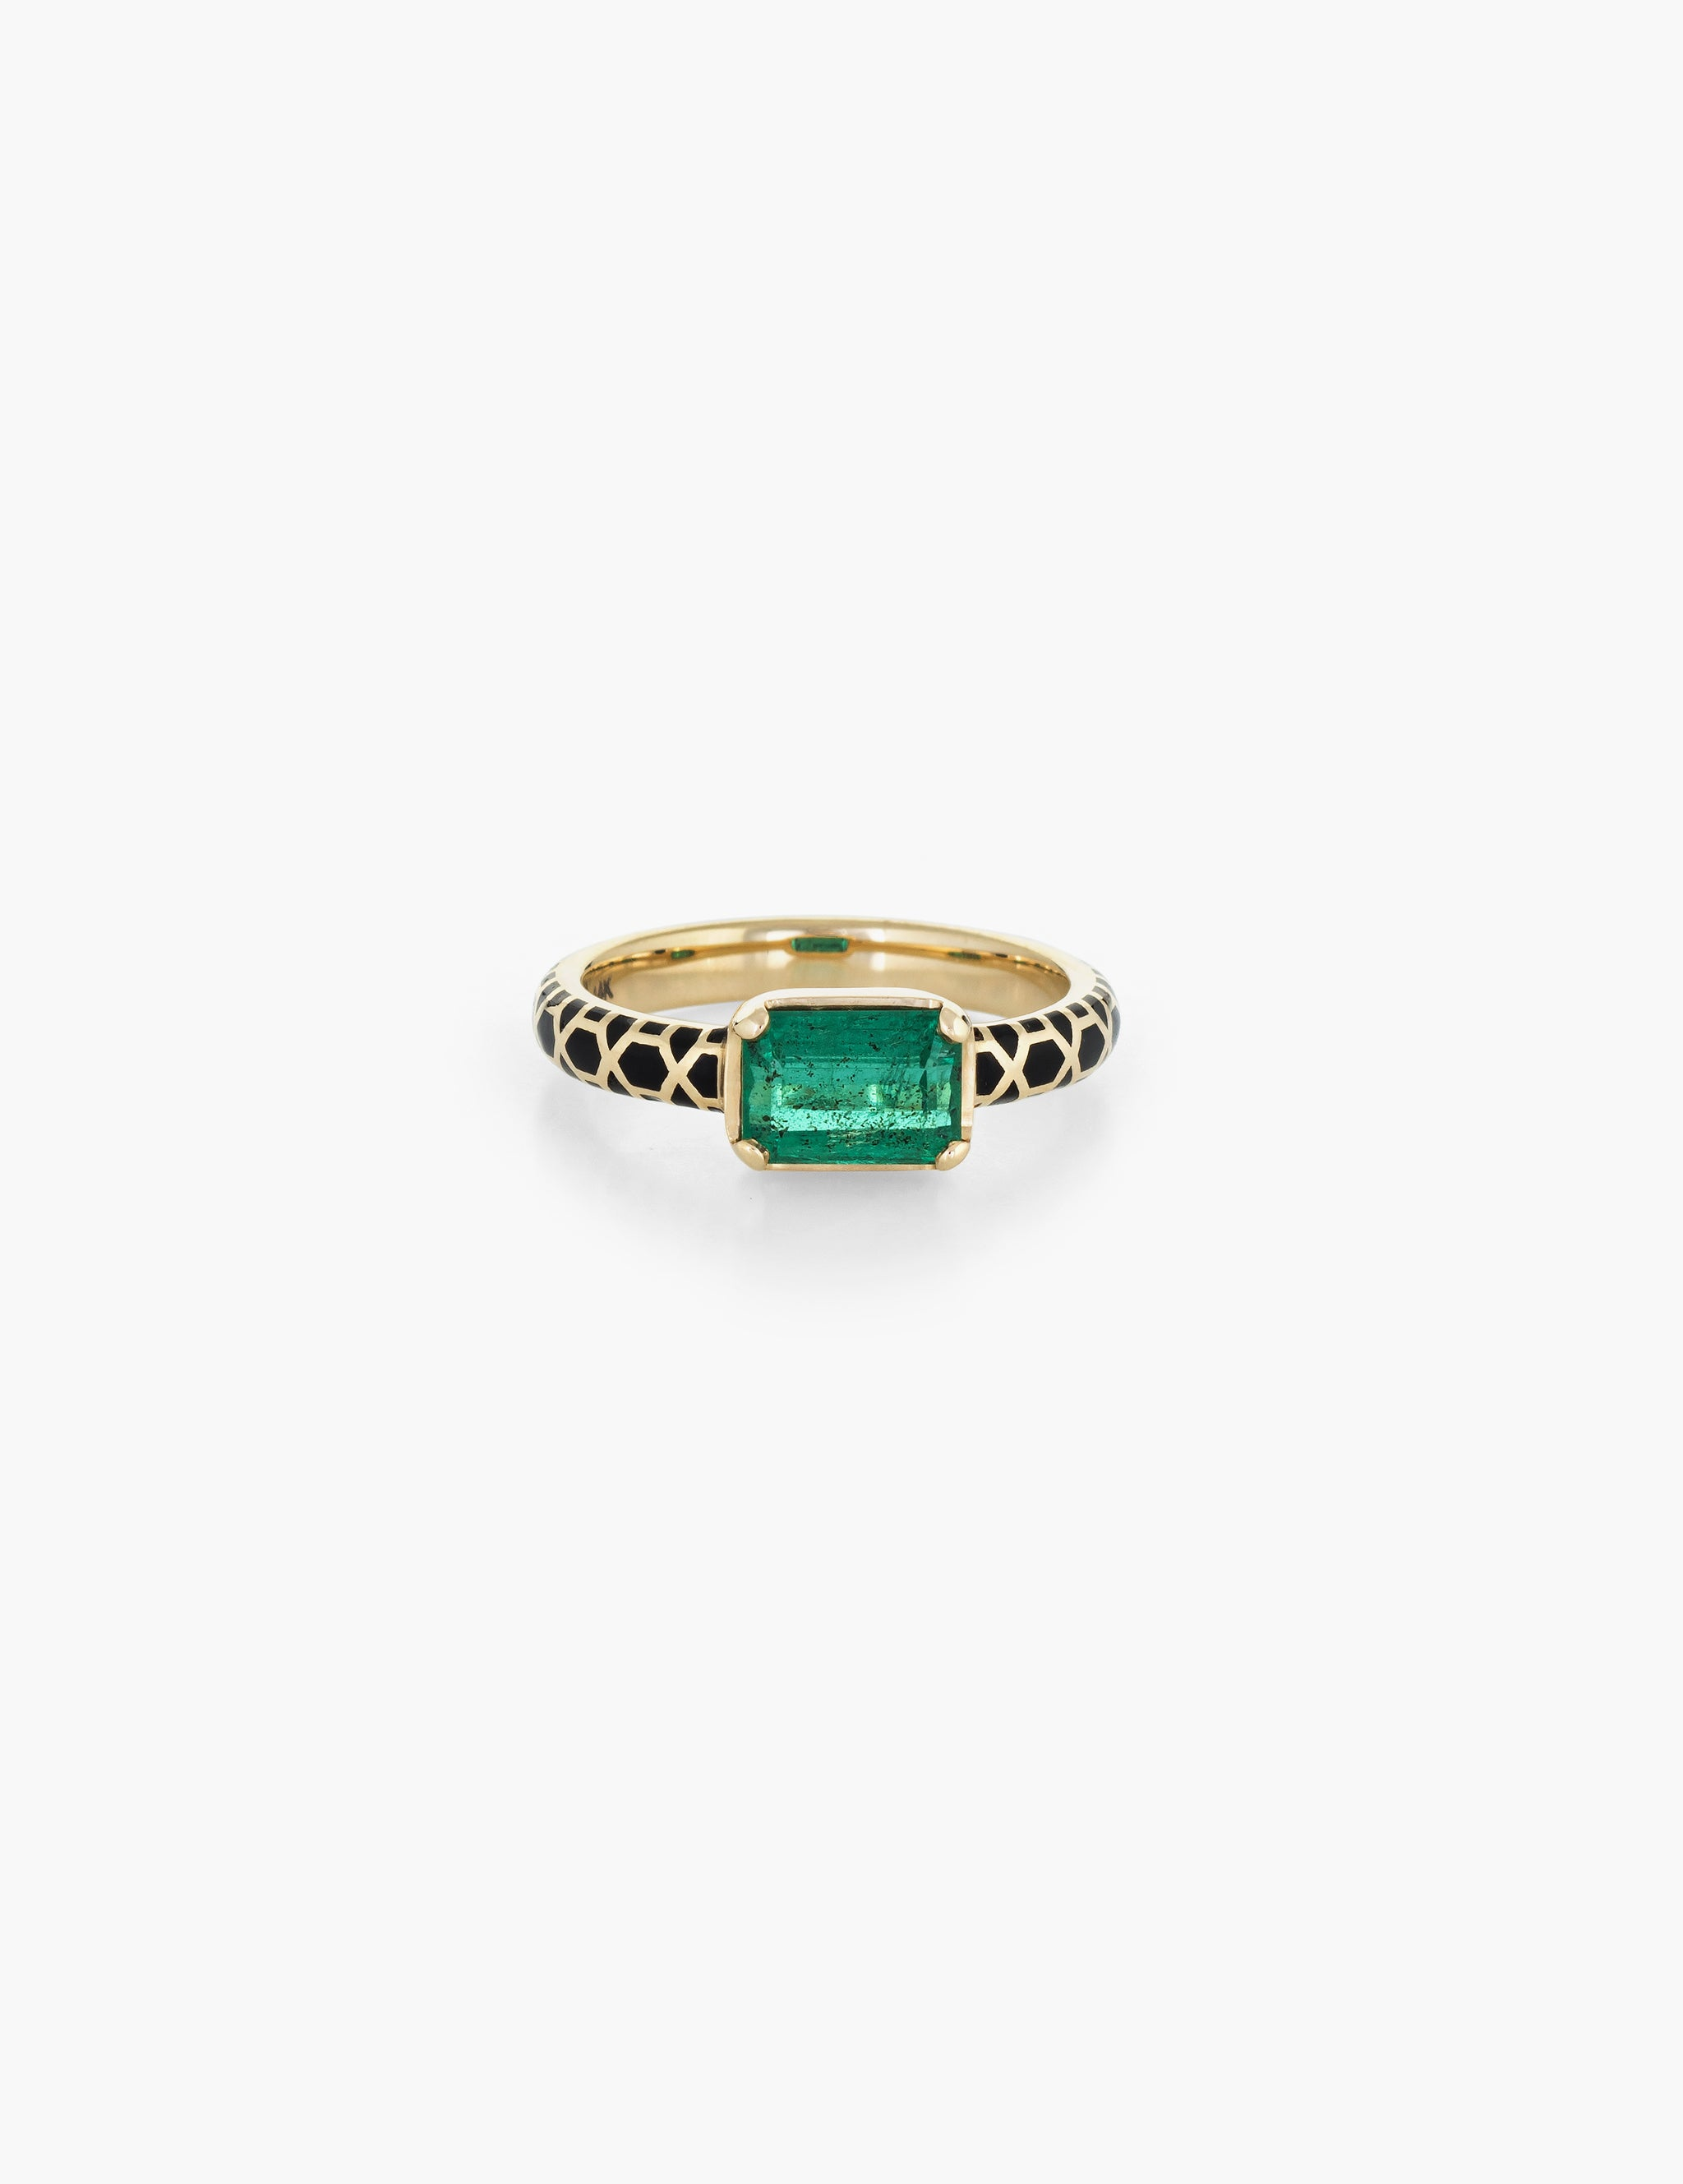 Emerald Step Cut Ring with enamel band